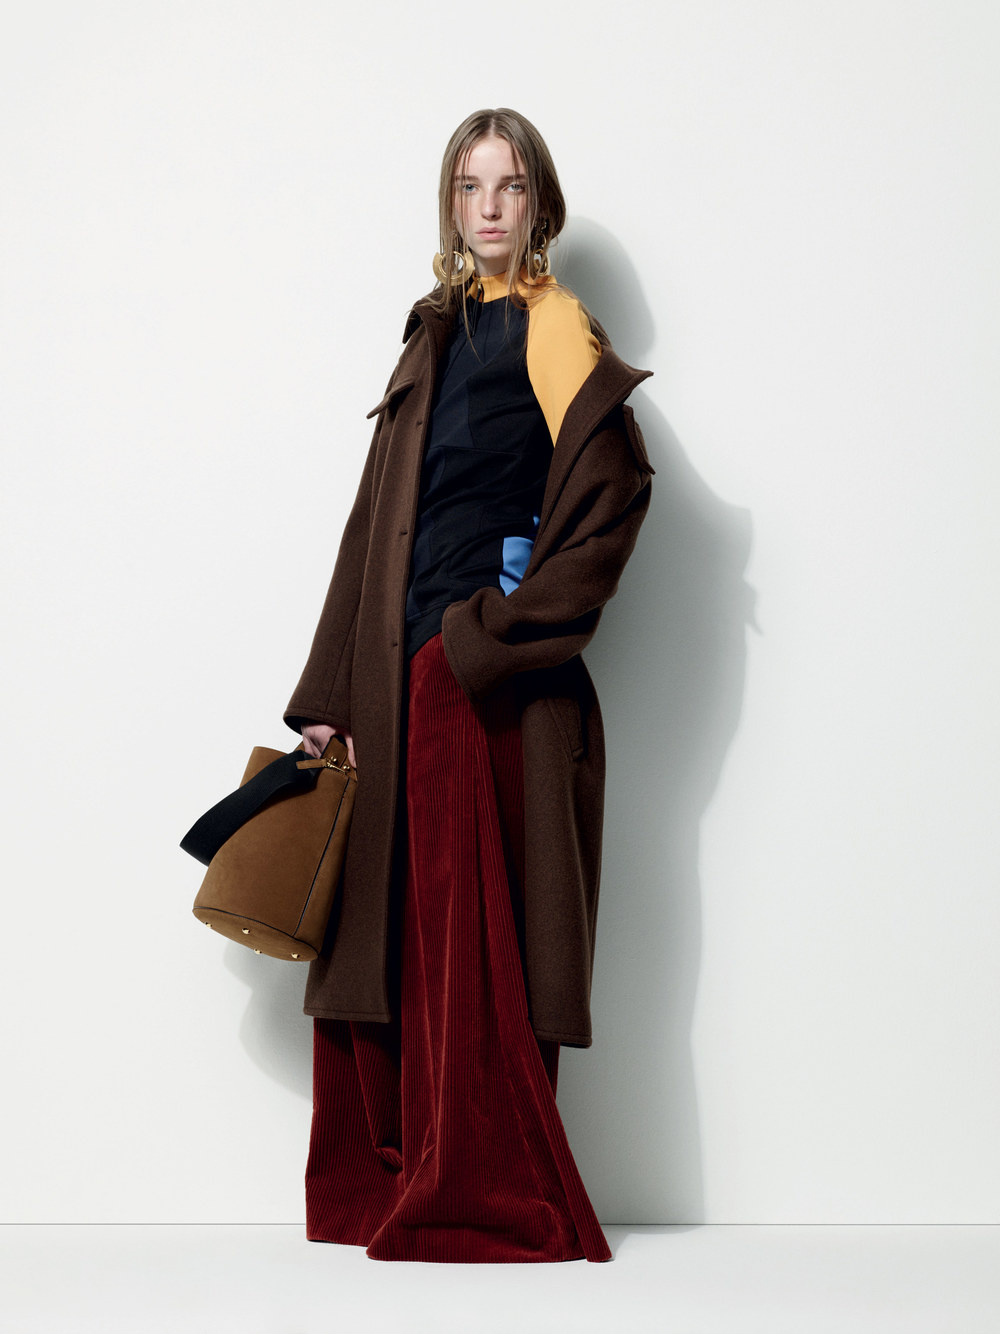 marni-pre-fall-2016-lookbook-16-new.jpg